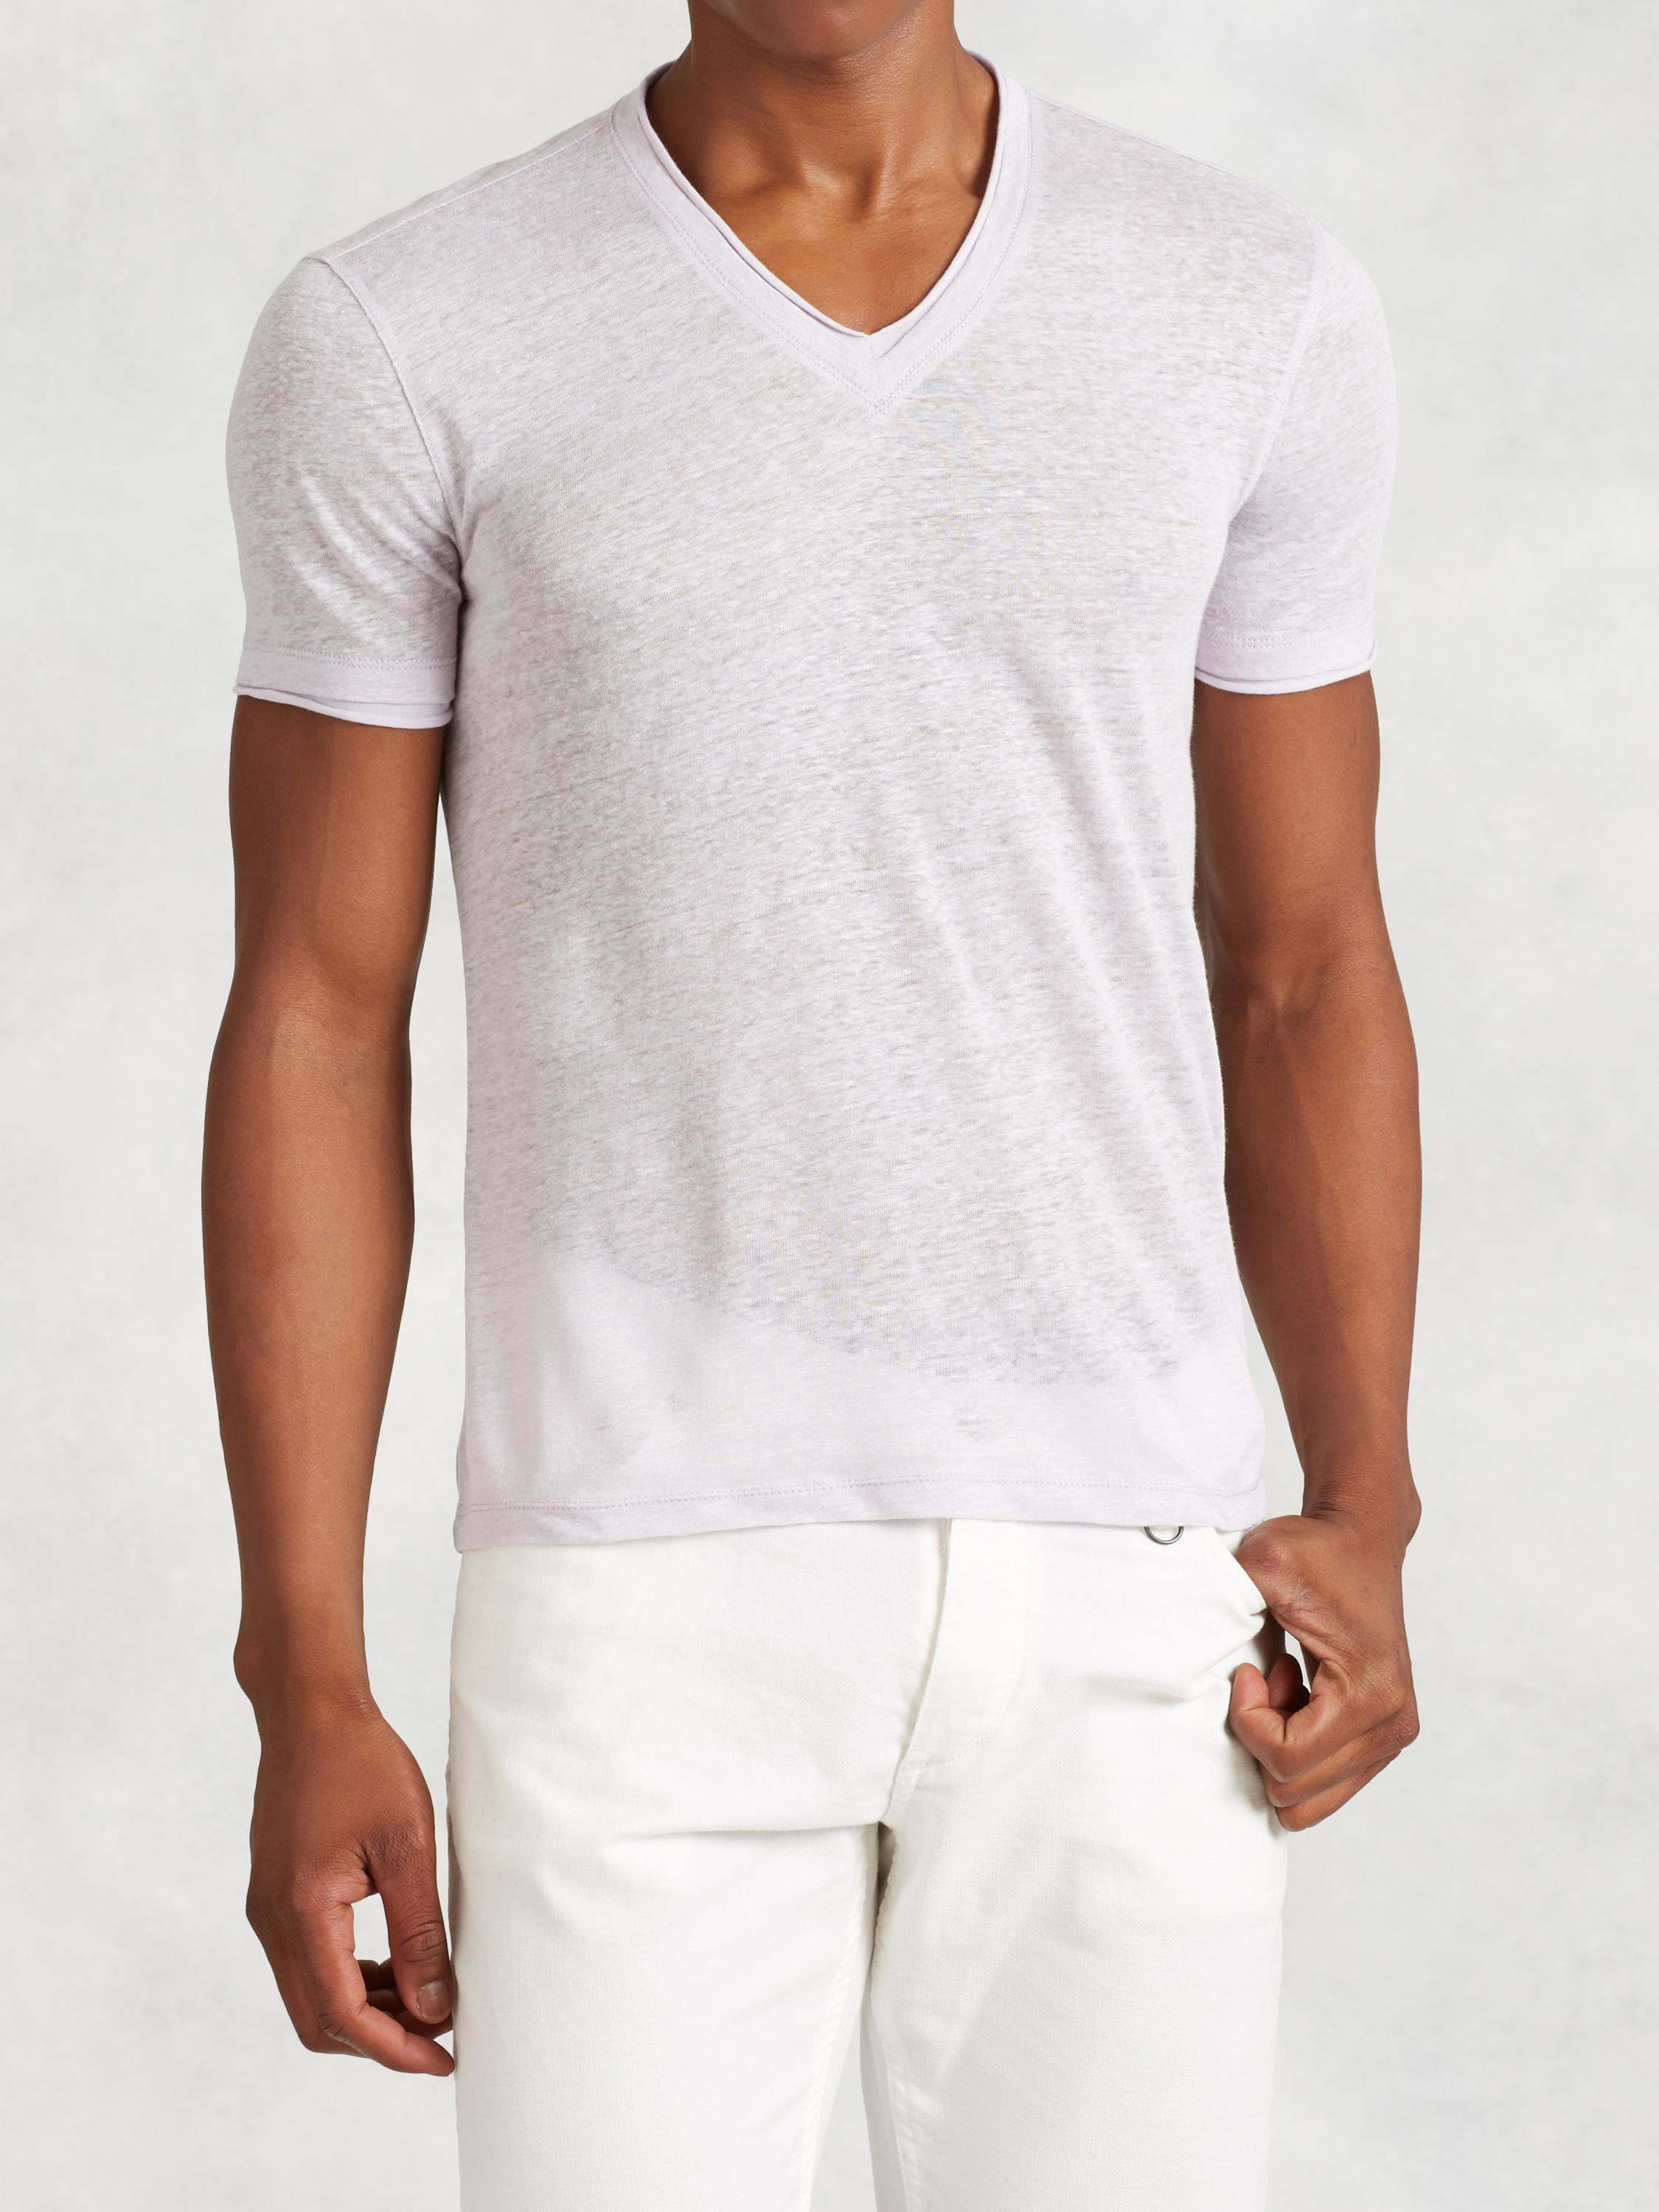 81cf8b8642 Lyst - John Varvatos Linen V-neck Tee in White for Men